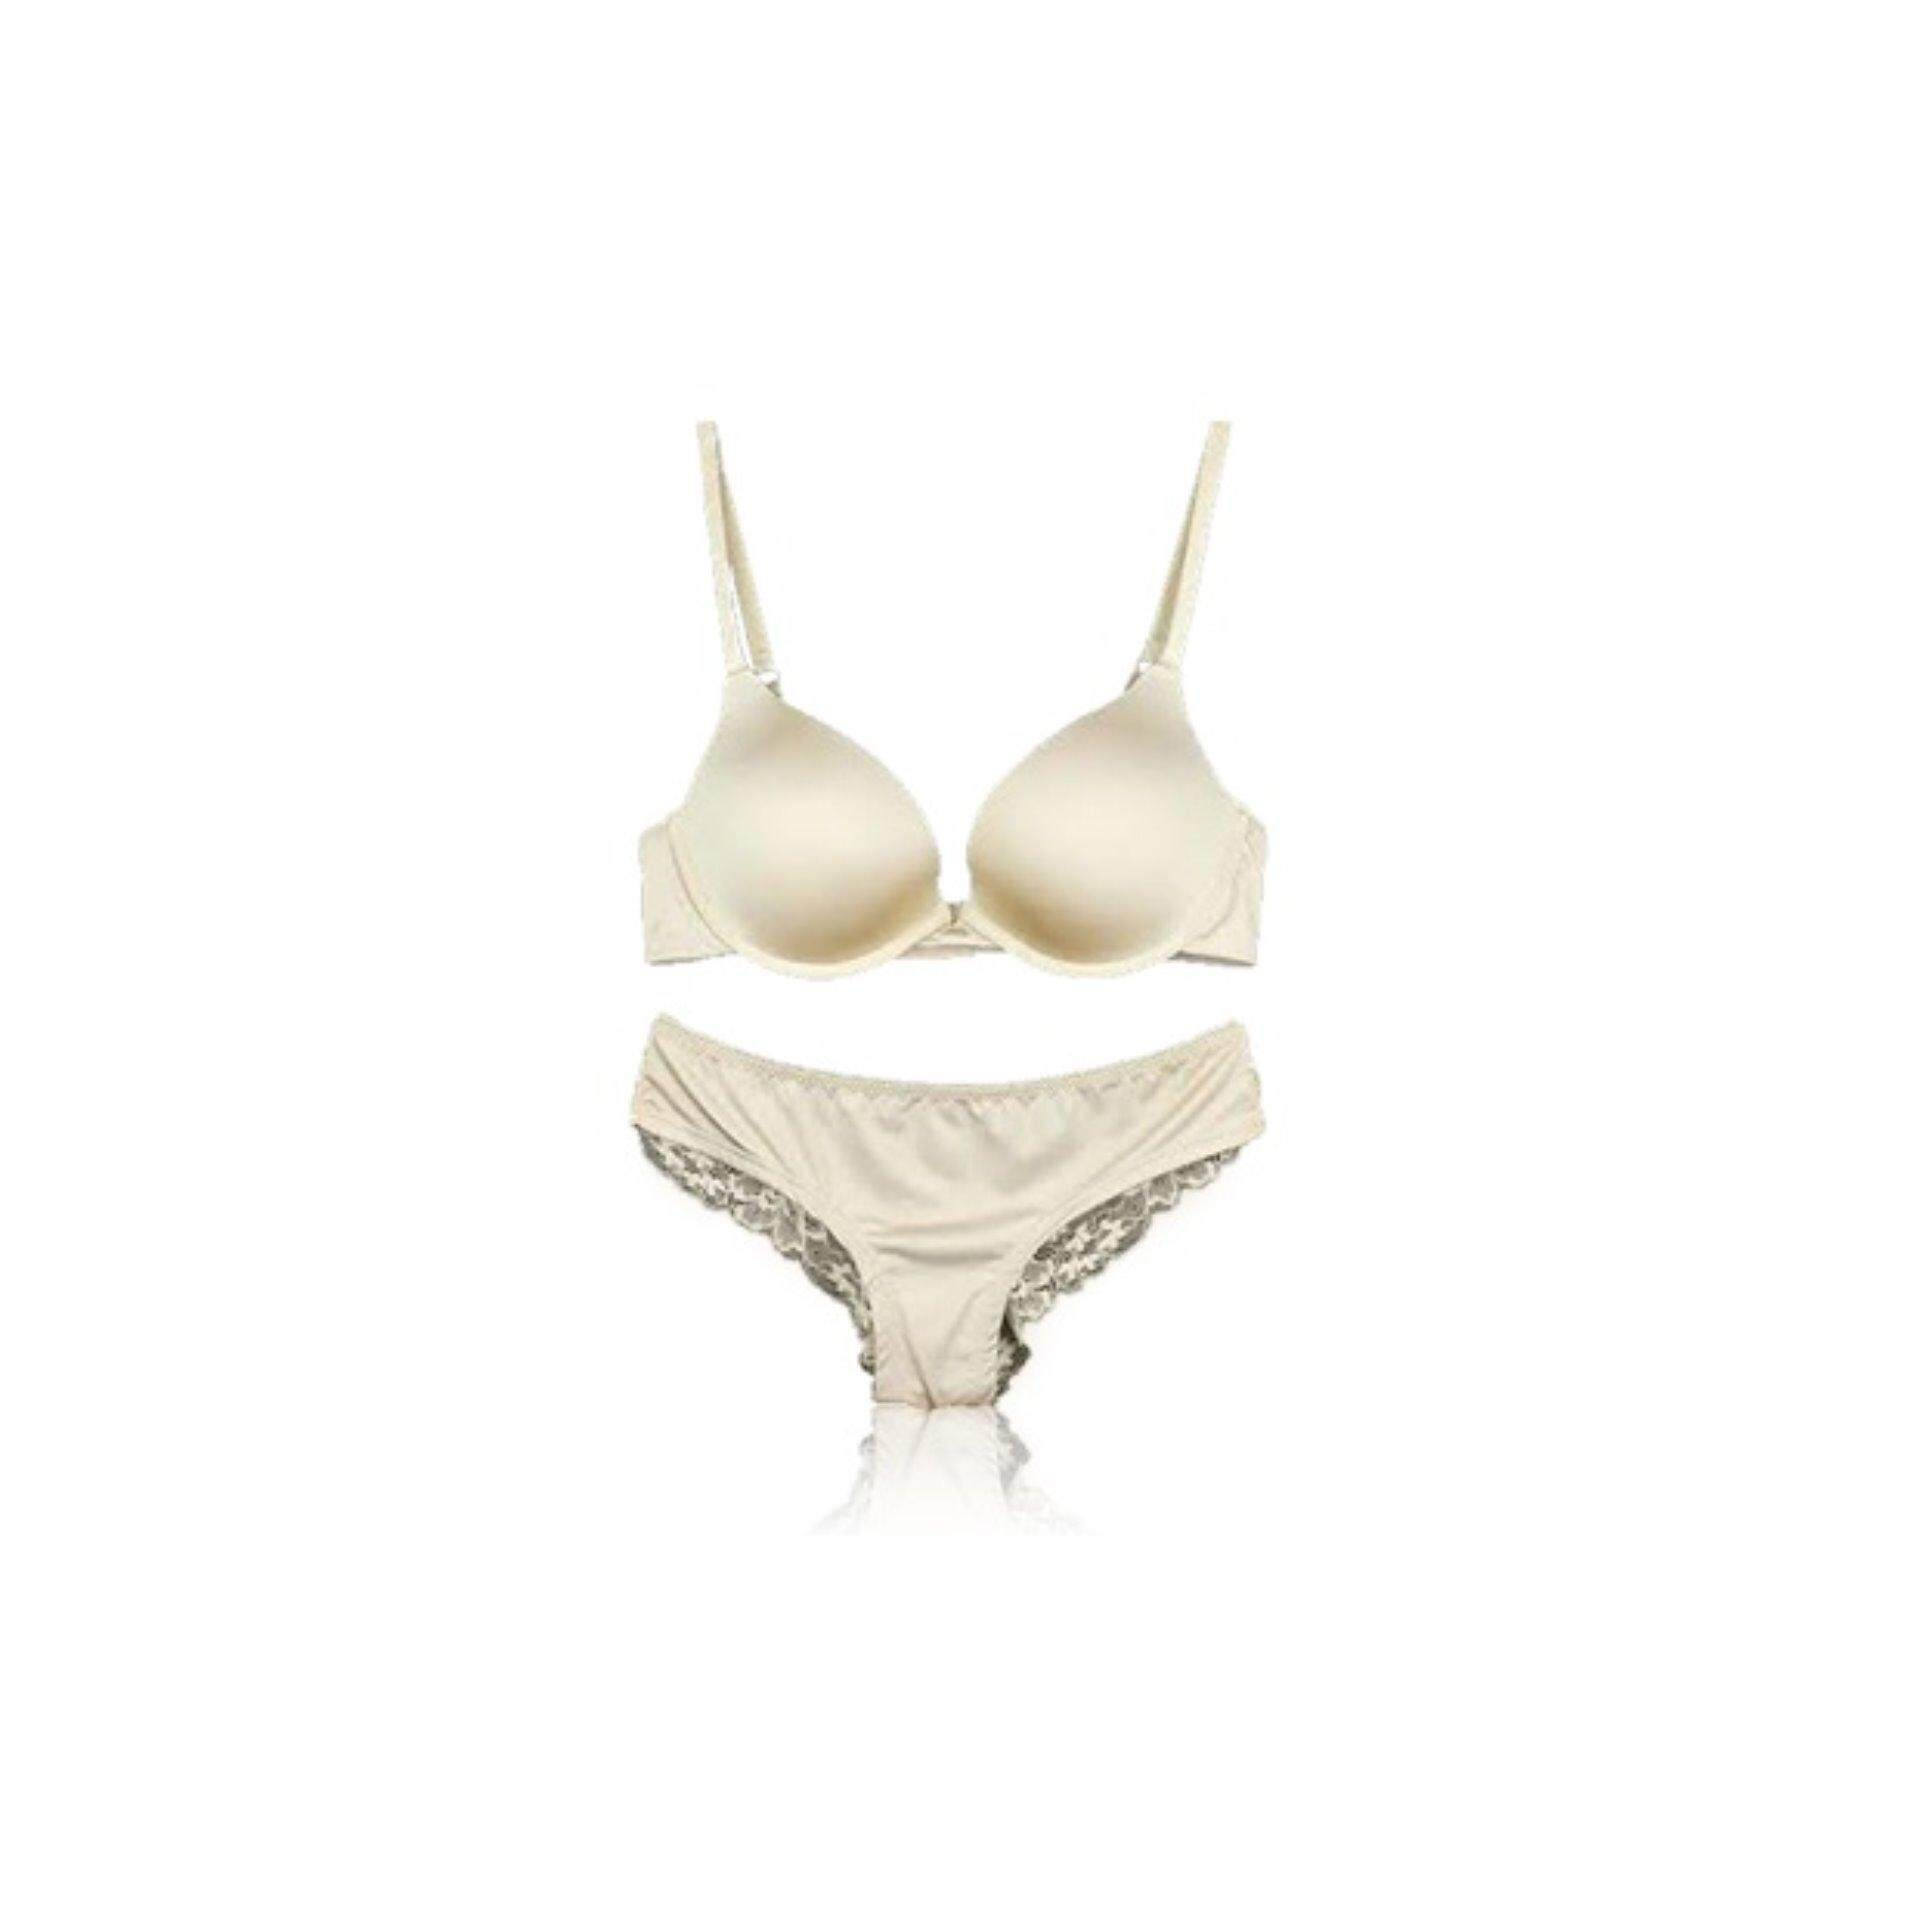 5cb322af0d V.S.Dream Angels Push Up Bra and Panties Set NUDE- Clearance Sale Below Cost